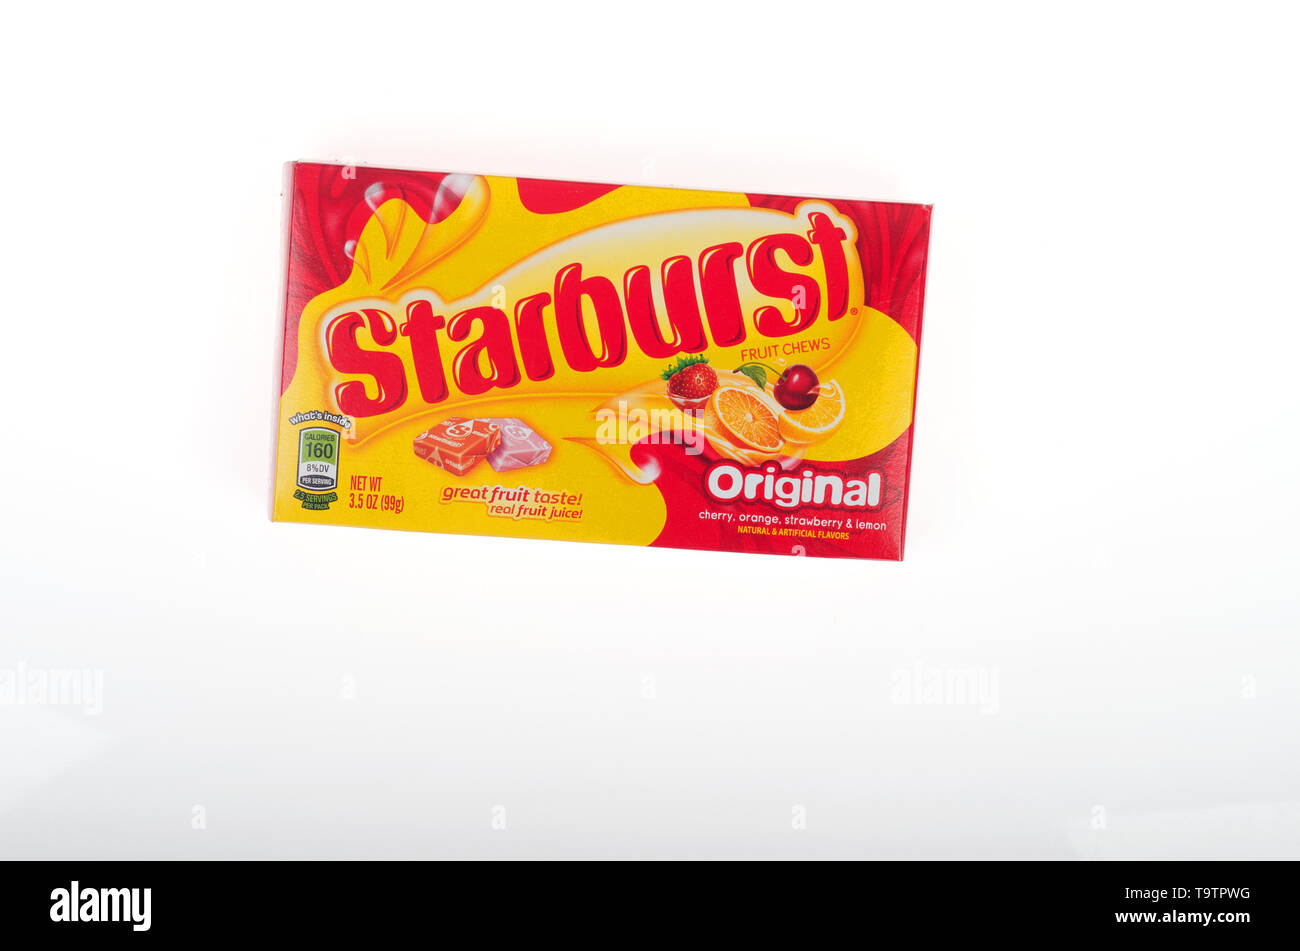 Starburst candy box by Wrigley Company division of Mars, Inc. - Stock Image